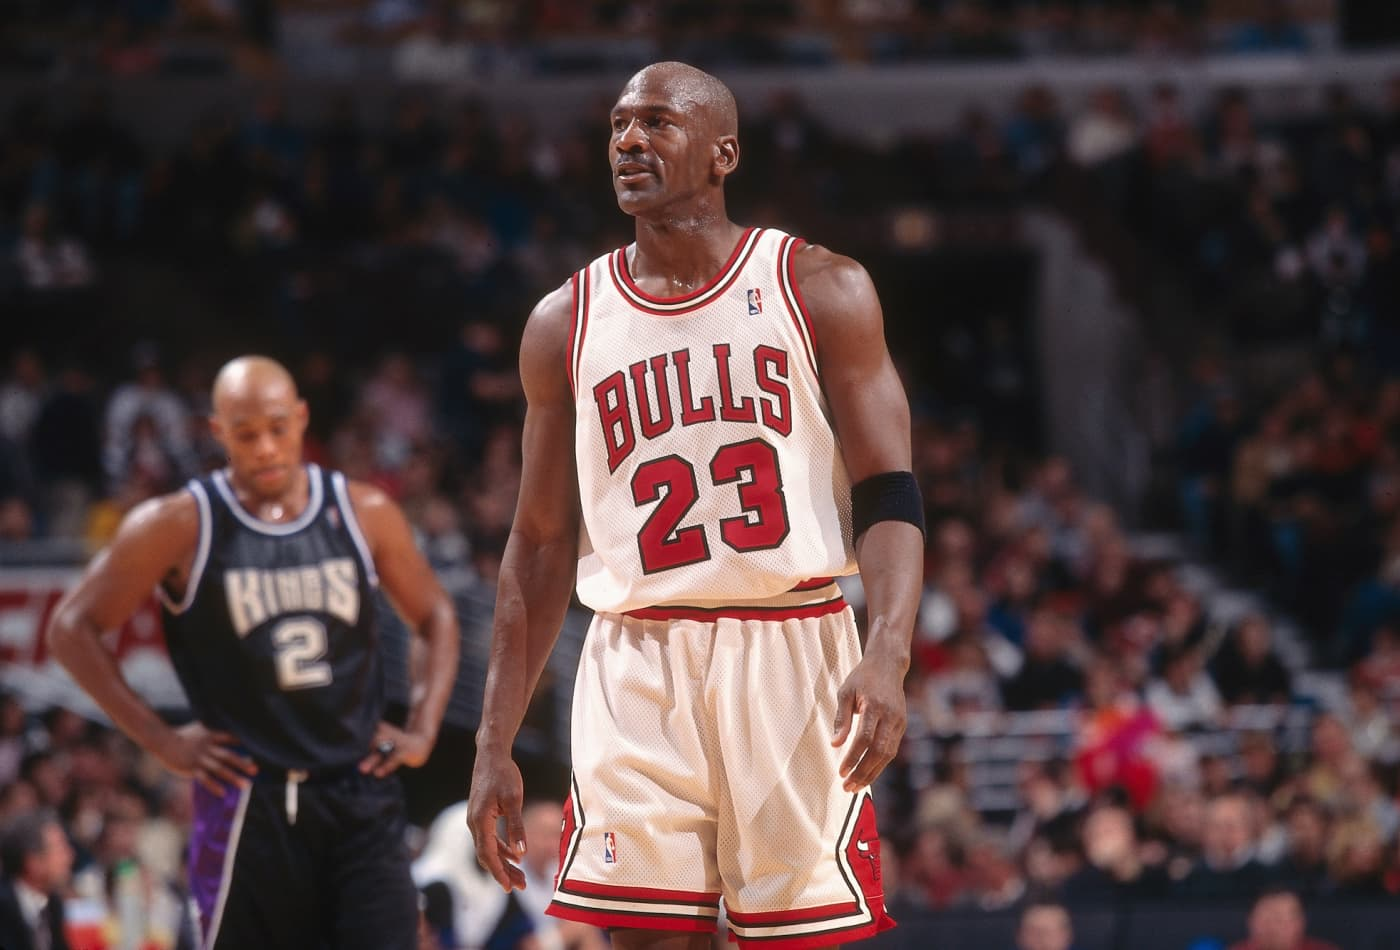 LeBron James, I would've worked perfectly with Michael Jordan